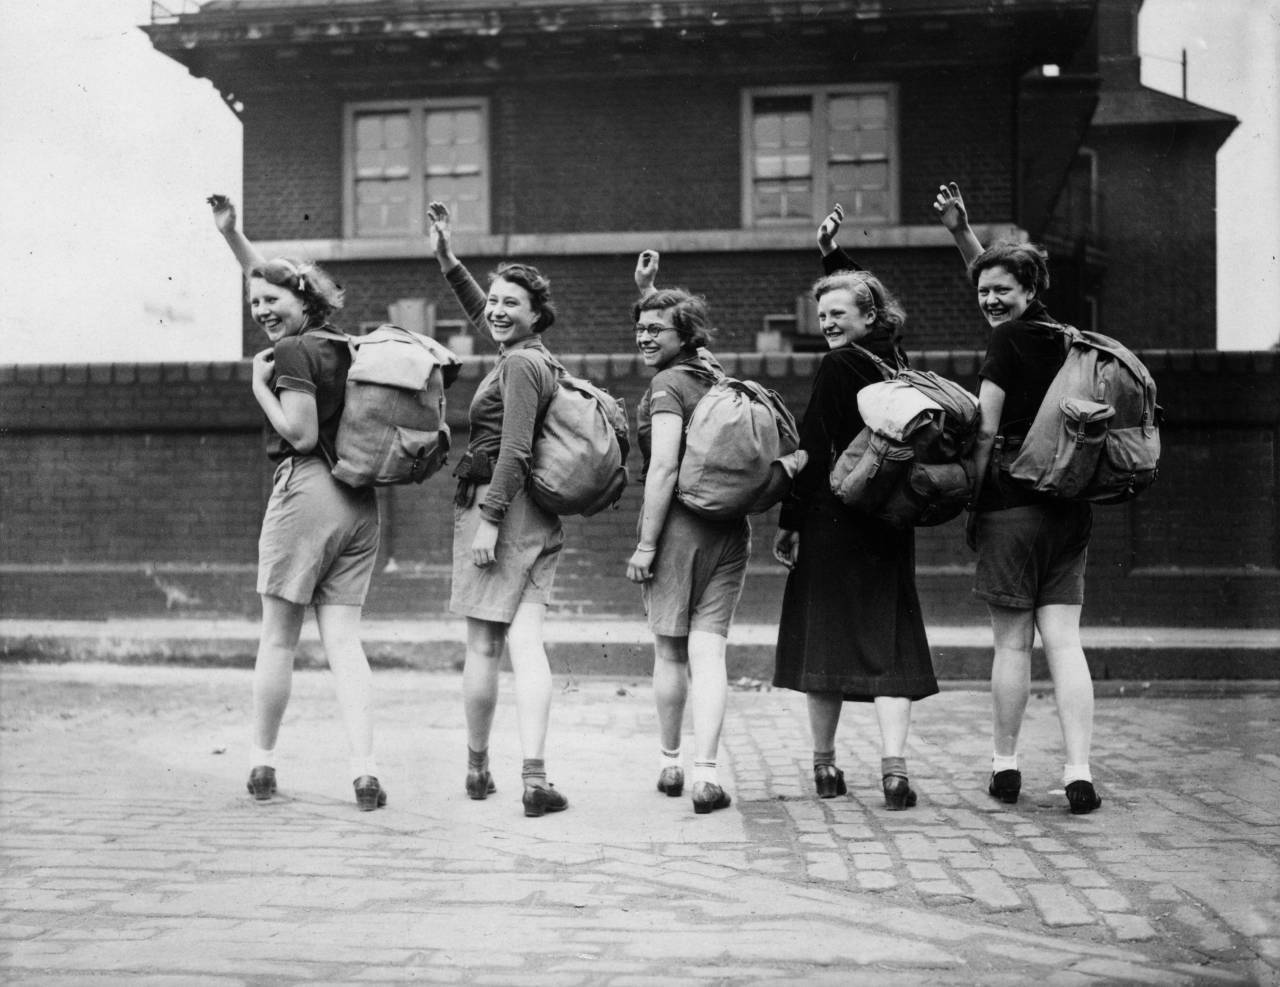 15th May 1937: A group of female hikers wave goodbye outside Waterloo Station, London, before setting off on a walking holiday. (Photo by E. Dean/Topical Press Agency/Getty Images)